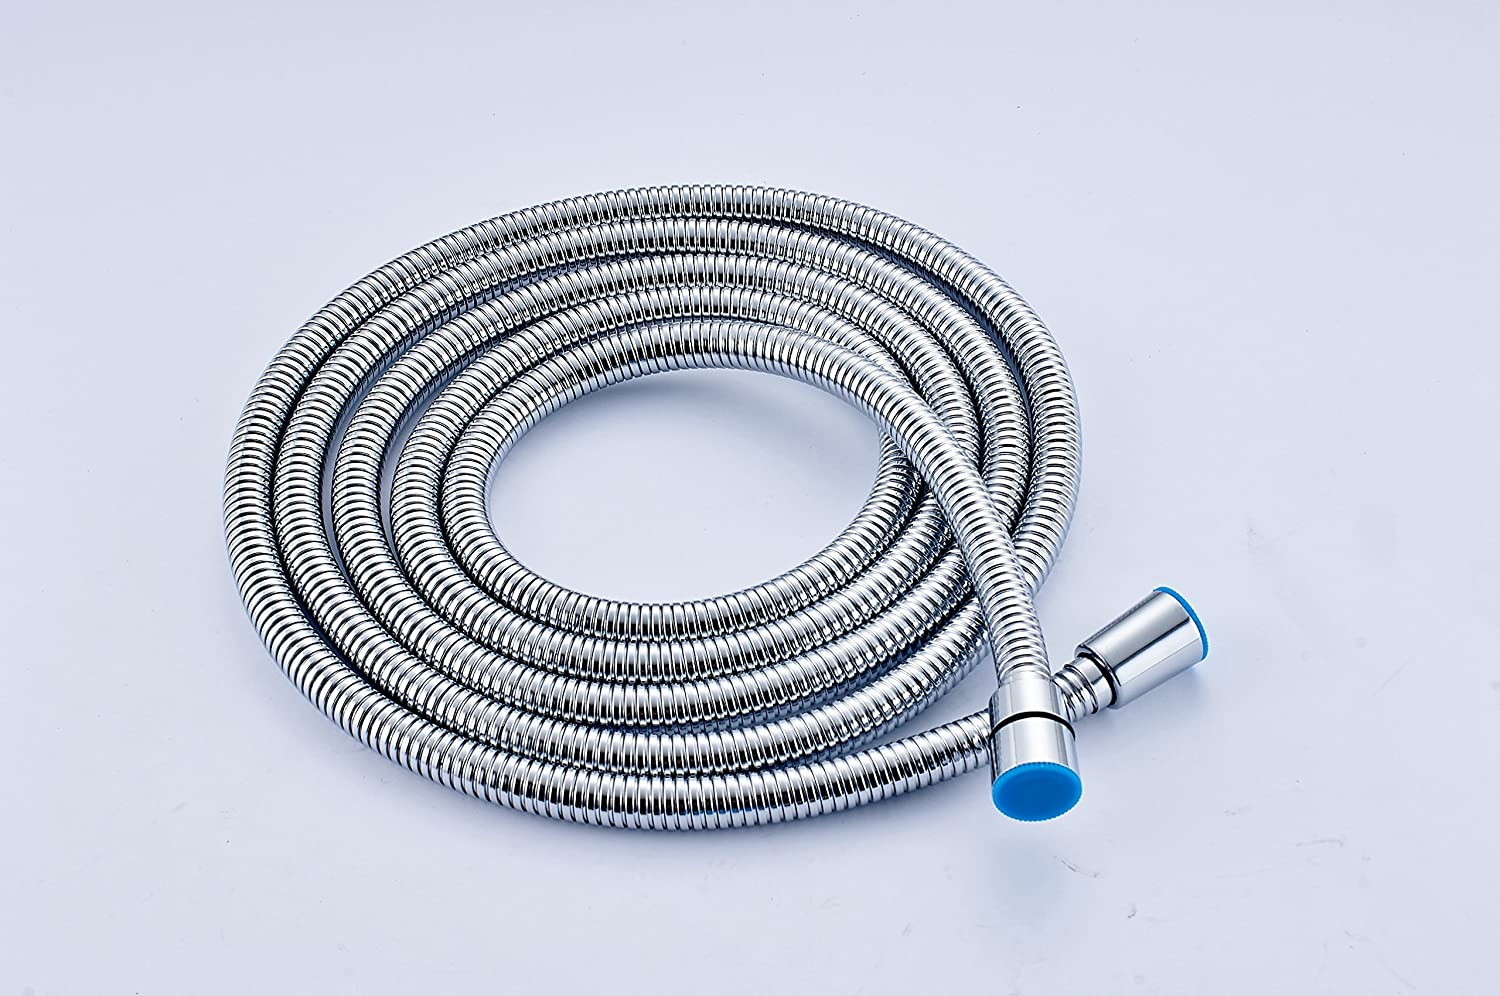 head8feet Rozin Extra Long Stainless Steel Handheld Shower Hose (8 Ft) (96 Inches)  (2.45 Meters) - - Amazon.com